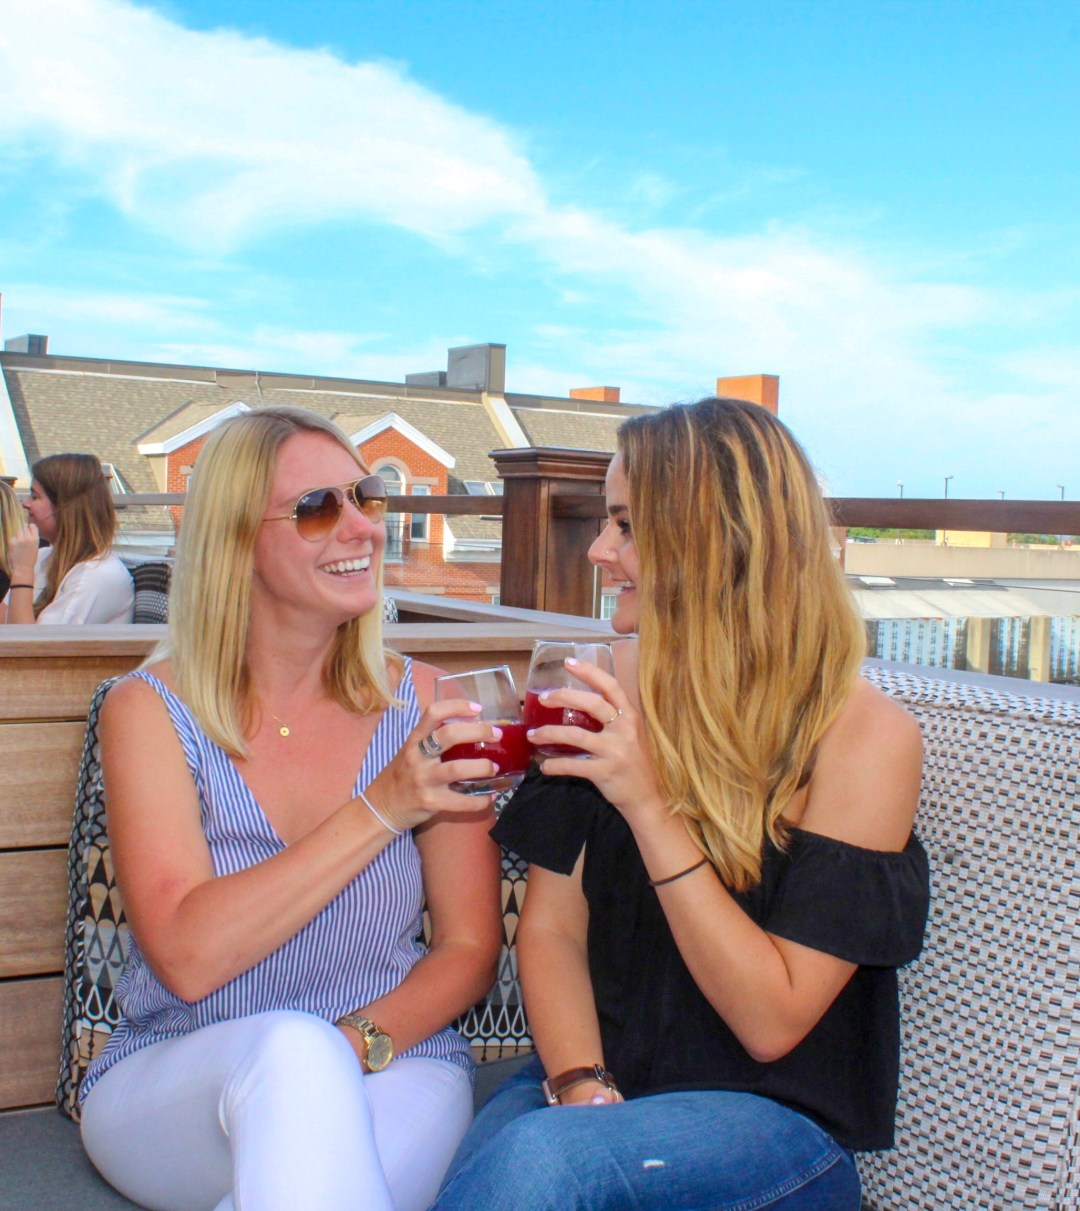 Two girls cheersing on a rooftop